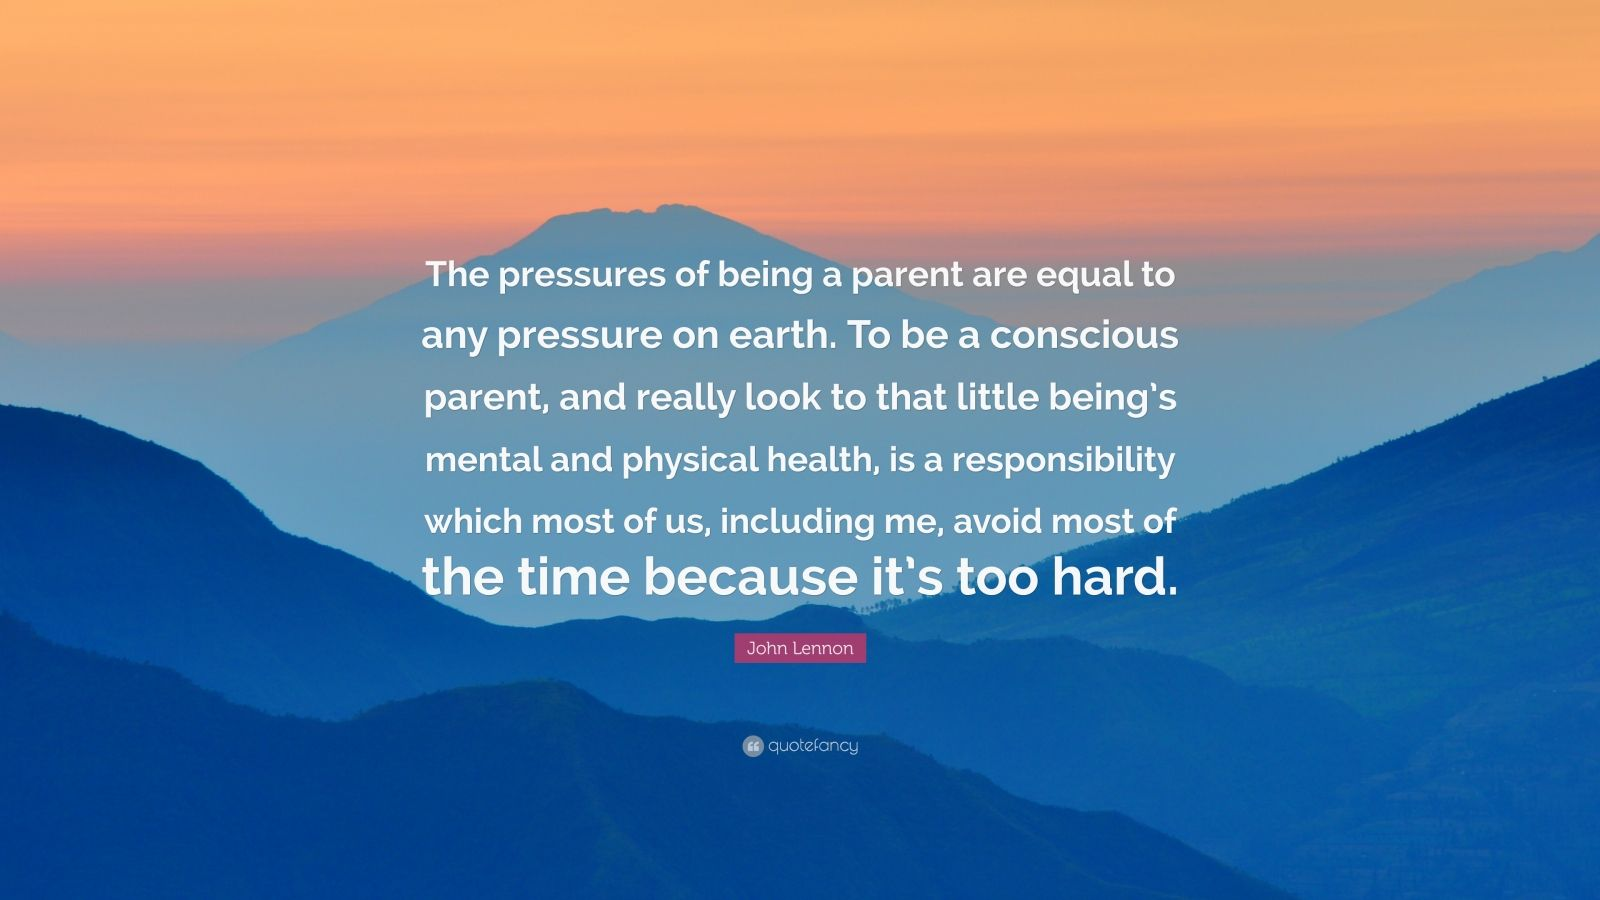 """John Lennon Quote: """"The pressures of being a parent are equal to any pressure on earth. To be a conscious parent, and really look to that little being's mental and physical health, is a responsibility which most of us, including me, avoid most of the time because it's too hard."""""""